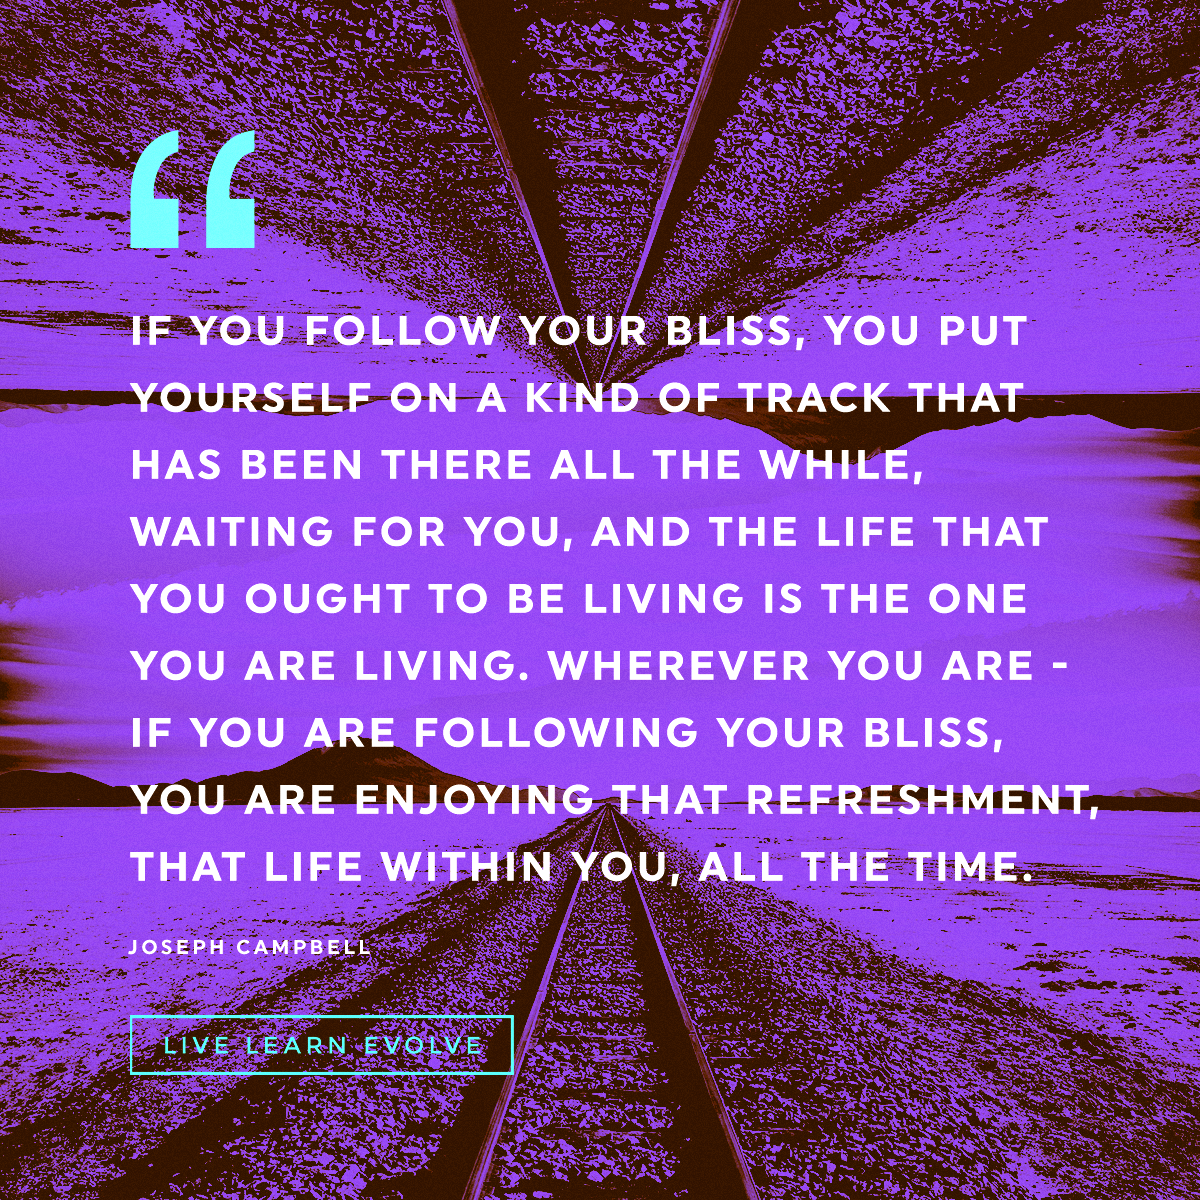 joseph-campbell-follow-your-bliss-quote